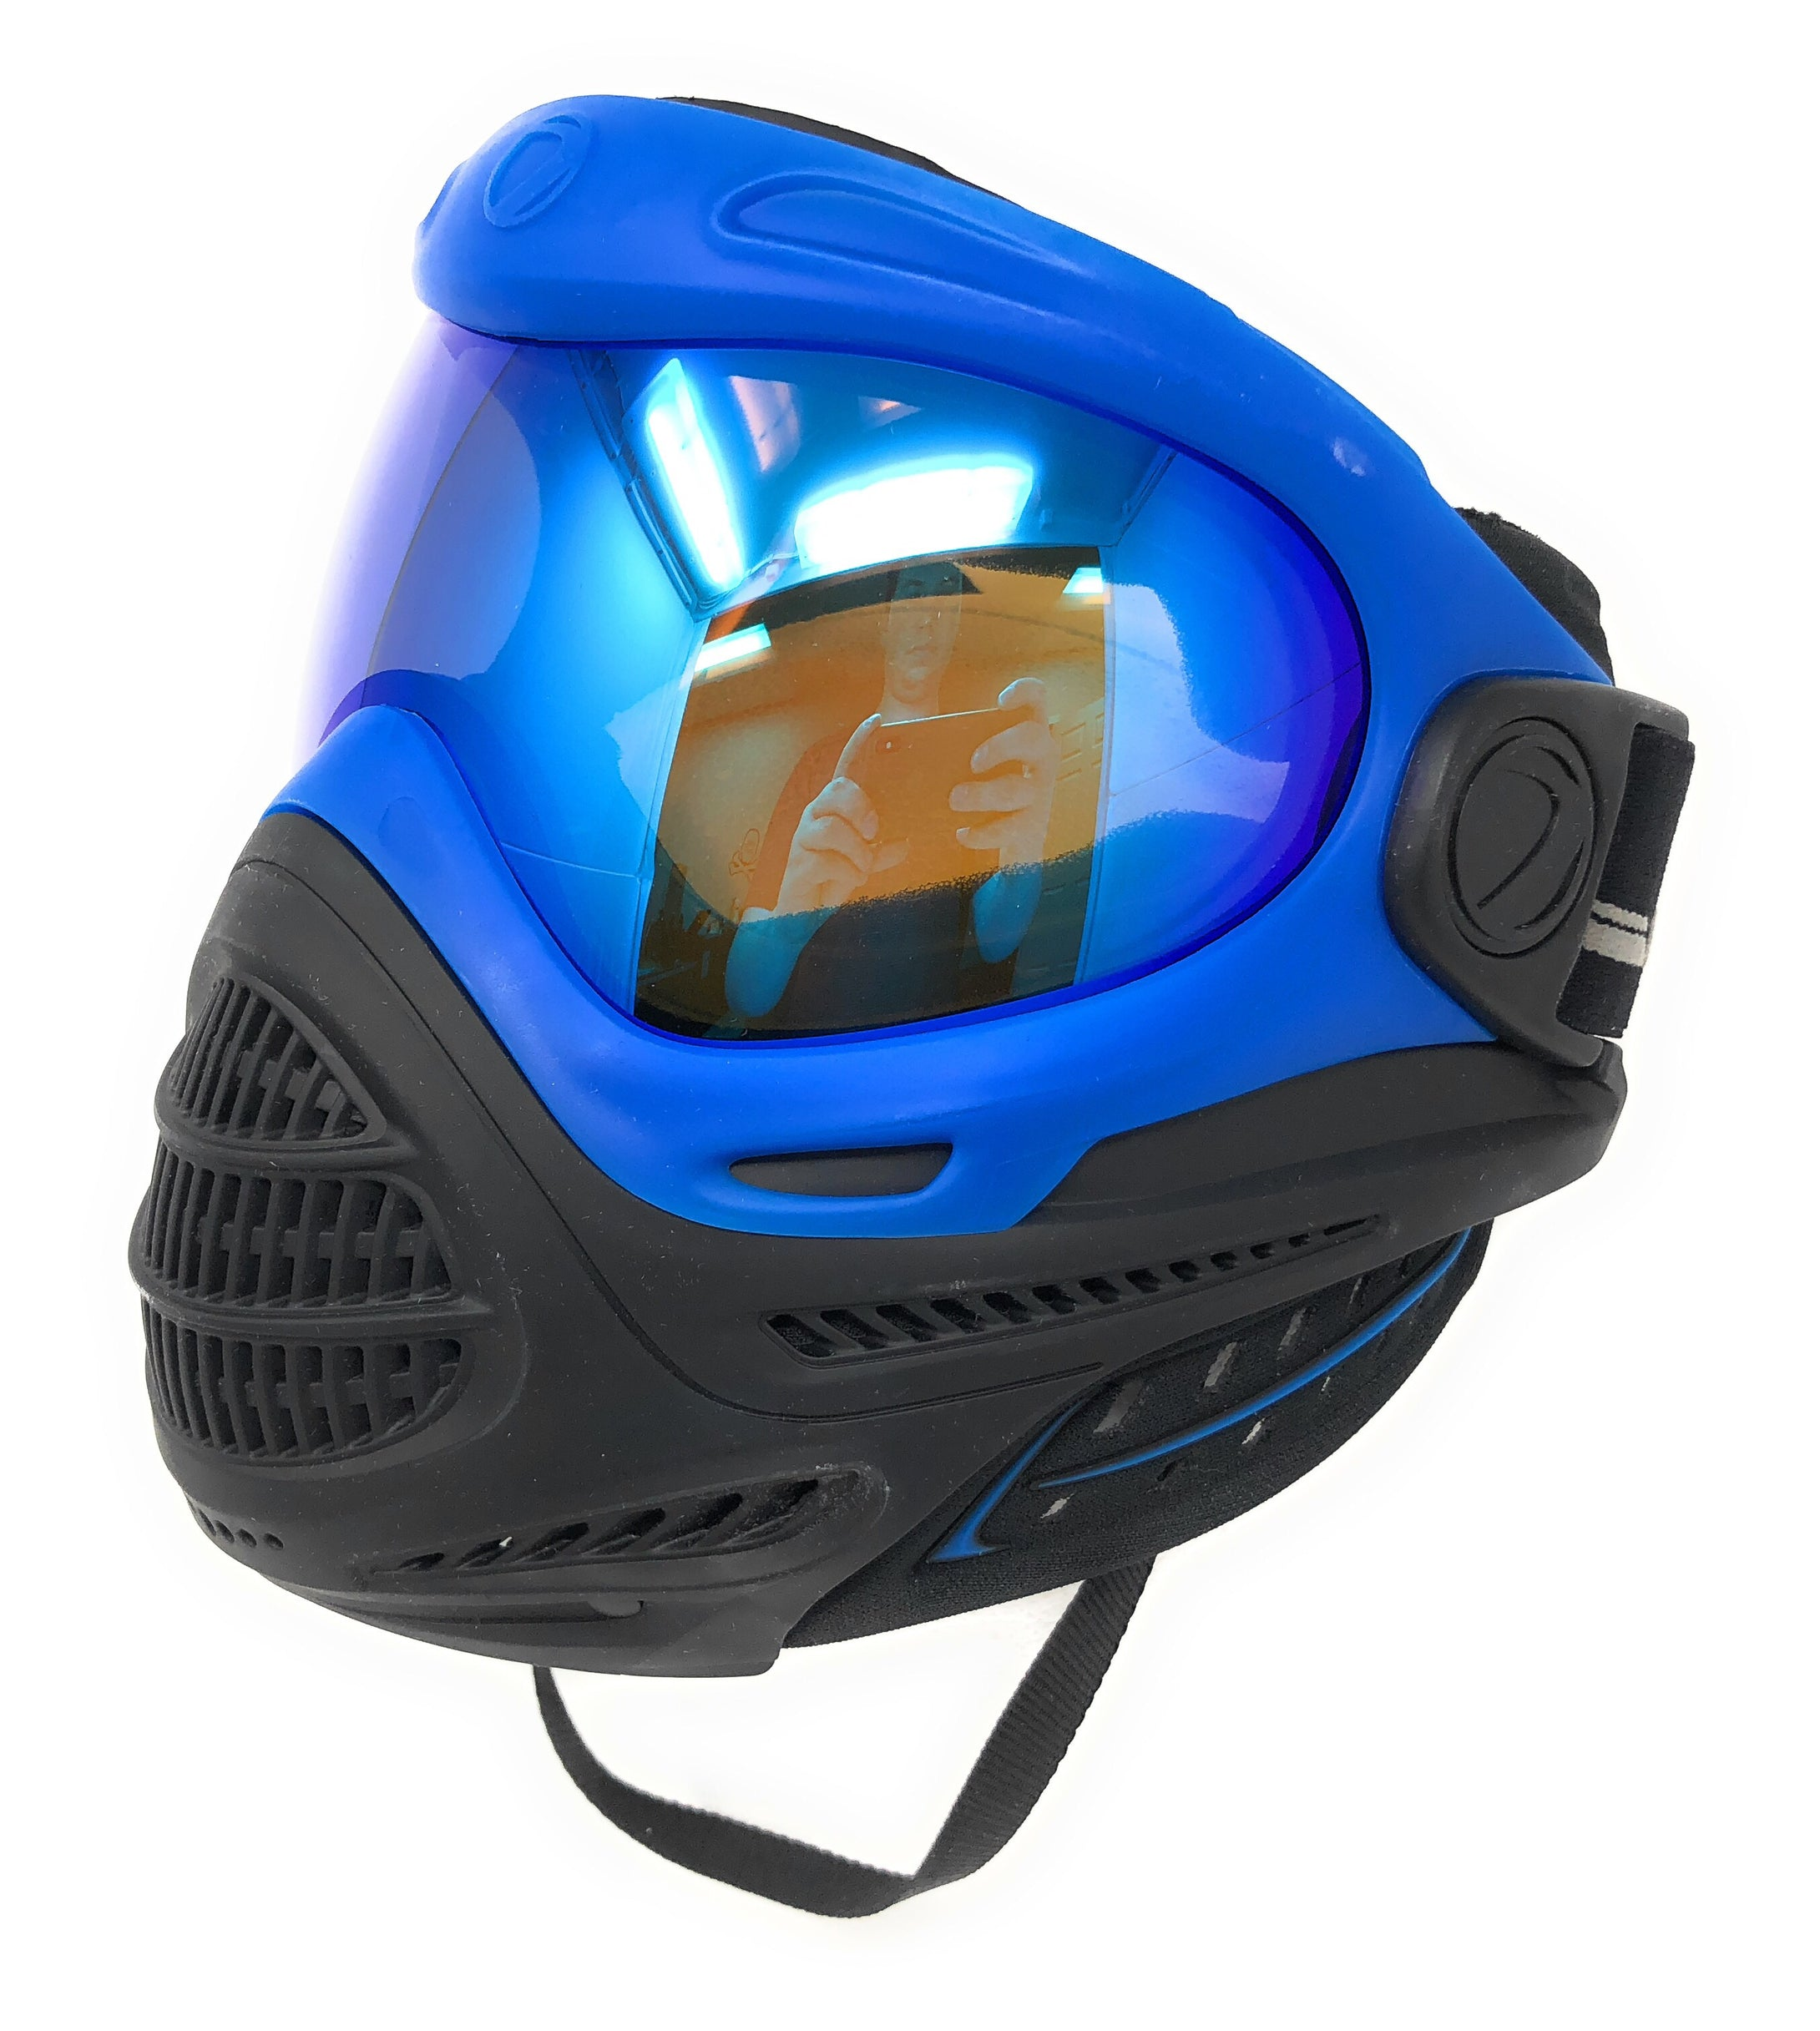 Photos of Dye Axis Pro Paintball Mask - Blue Ice. Photo taken by drpaintball.com